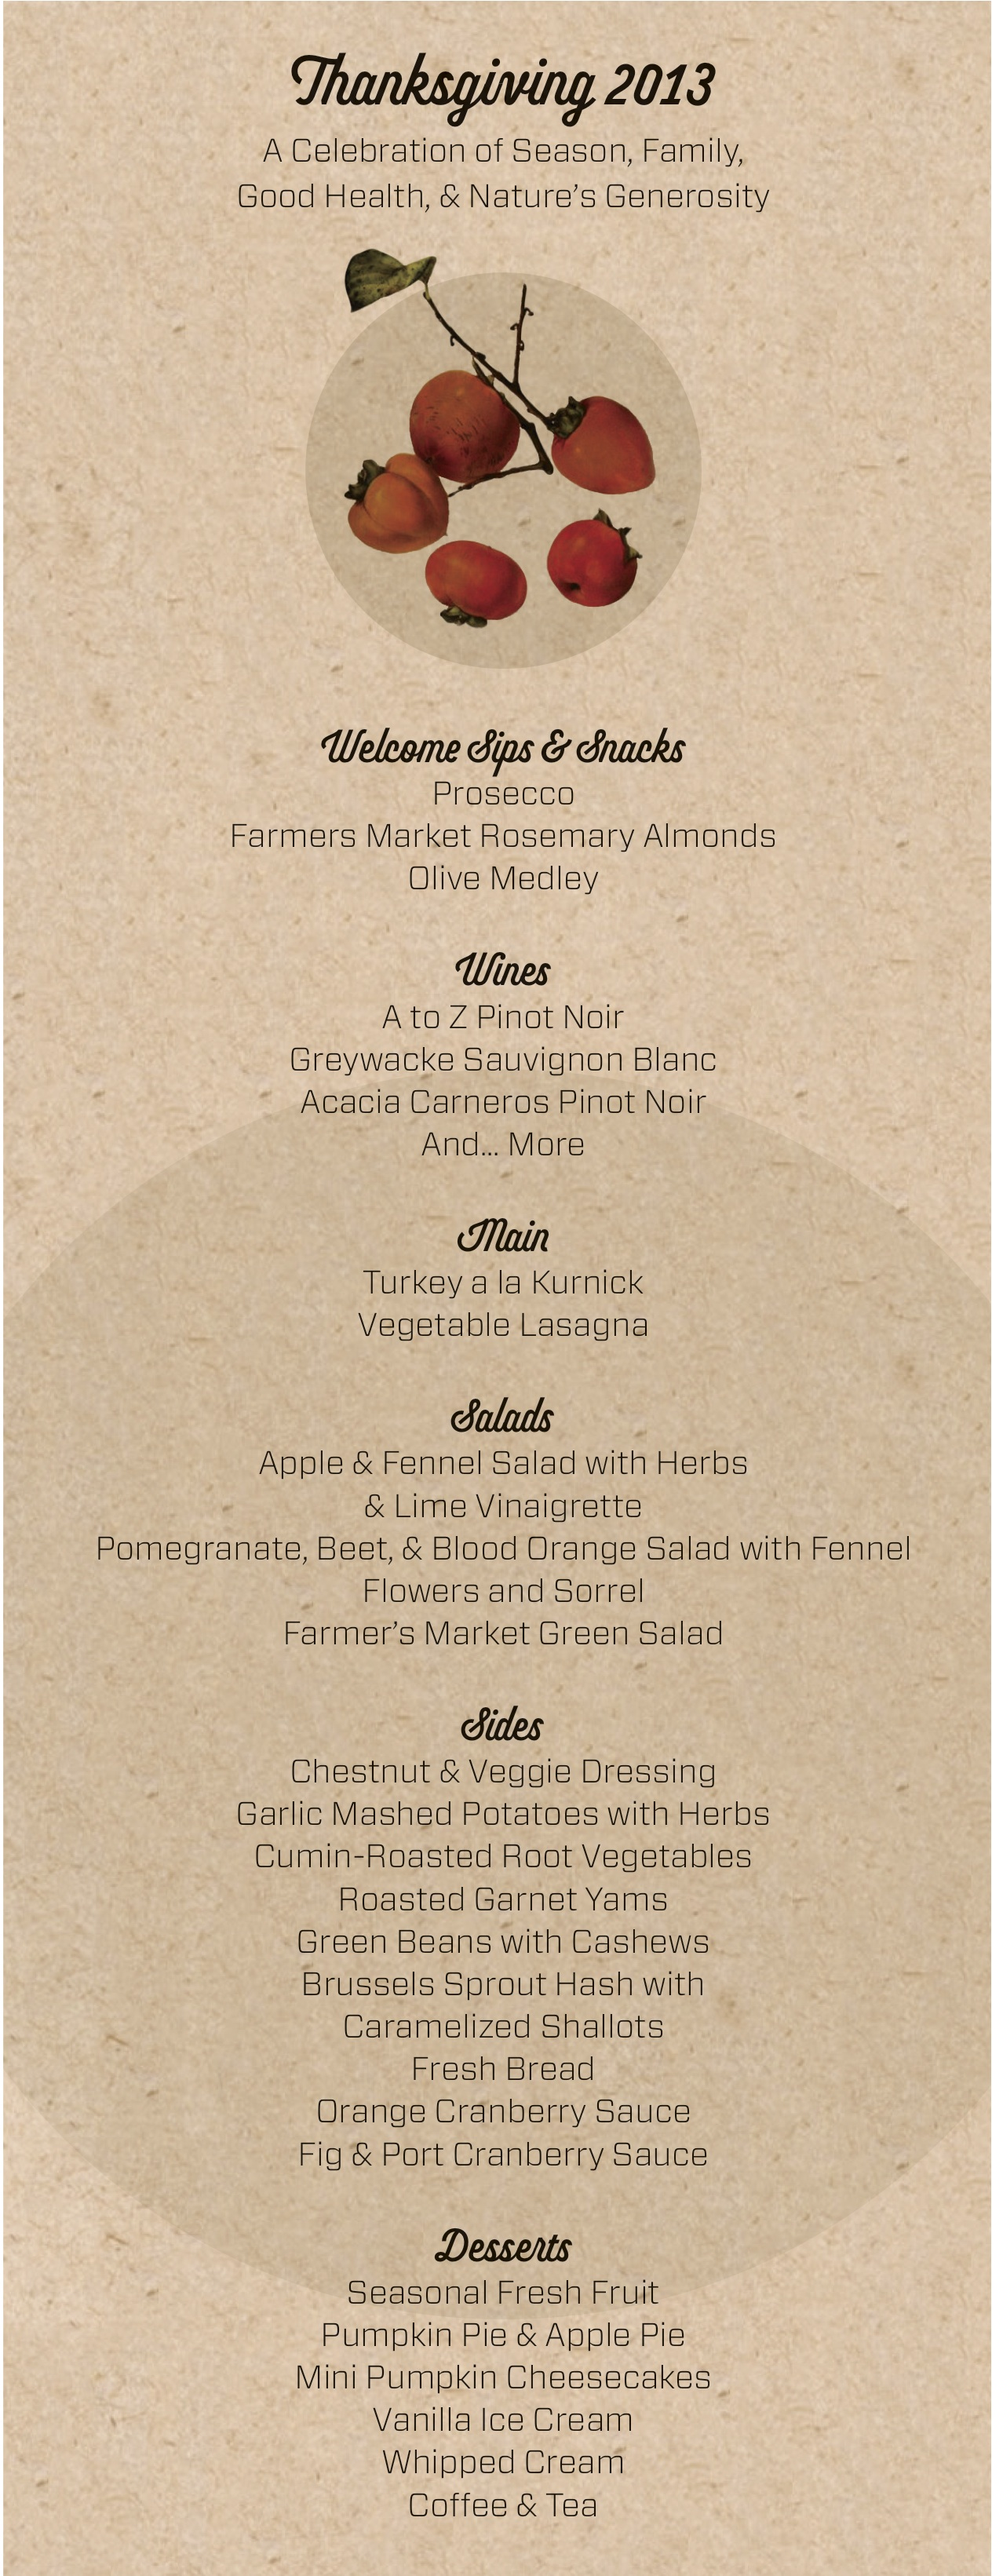 Thanksgiving menu 2013